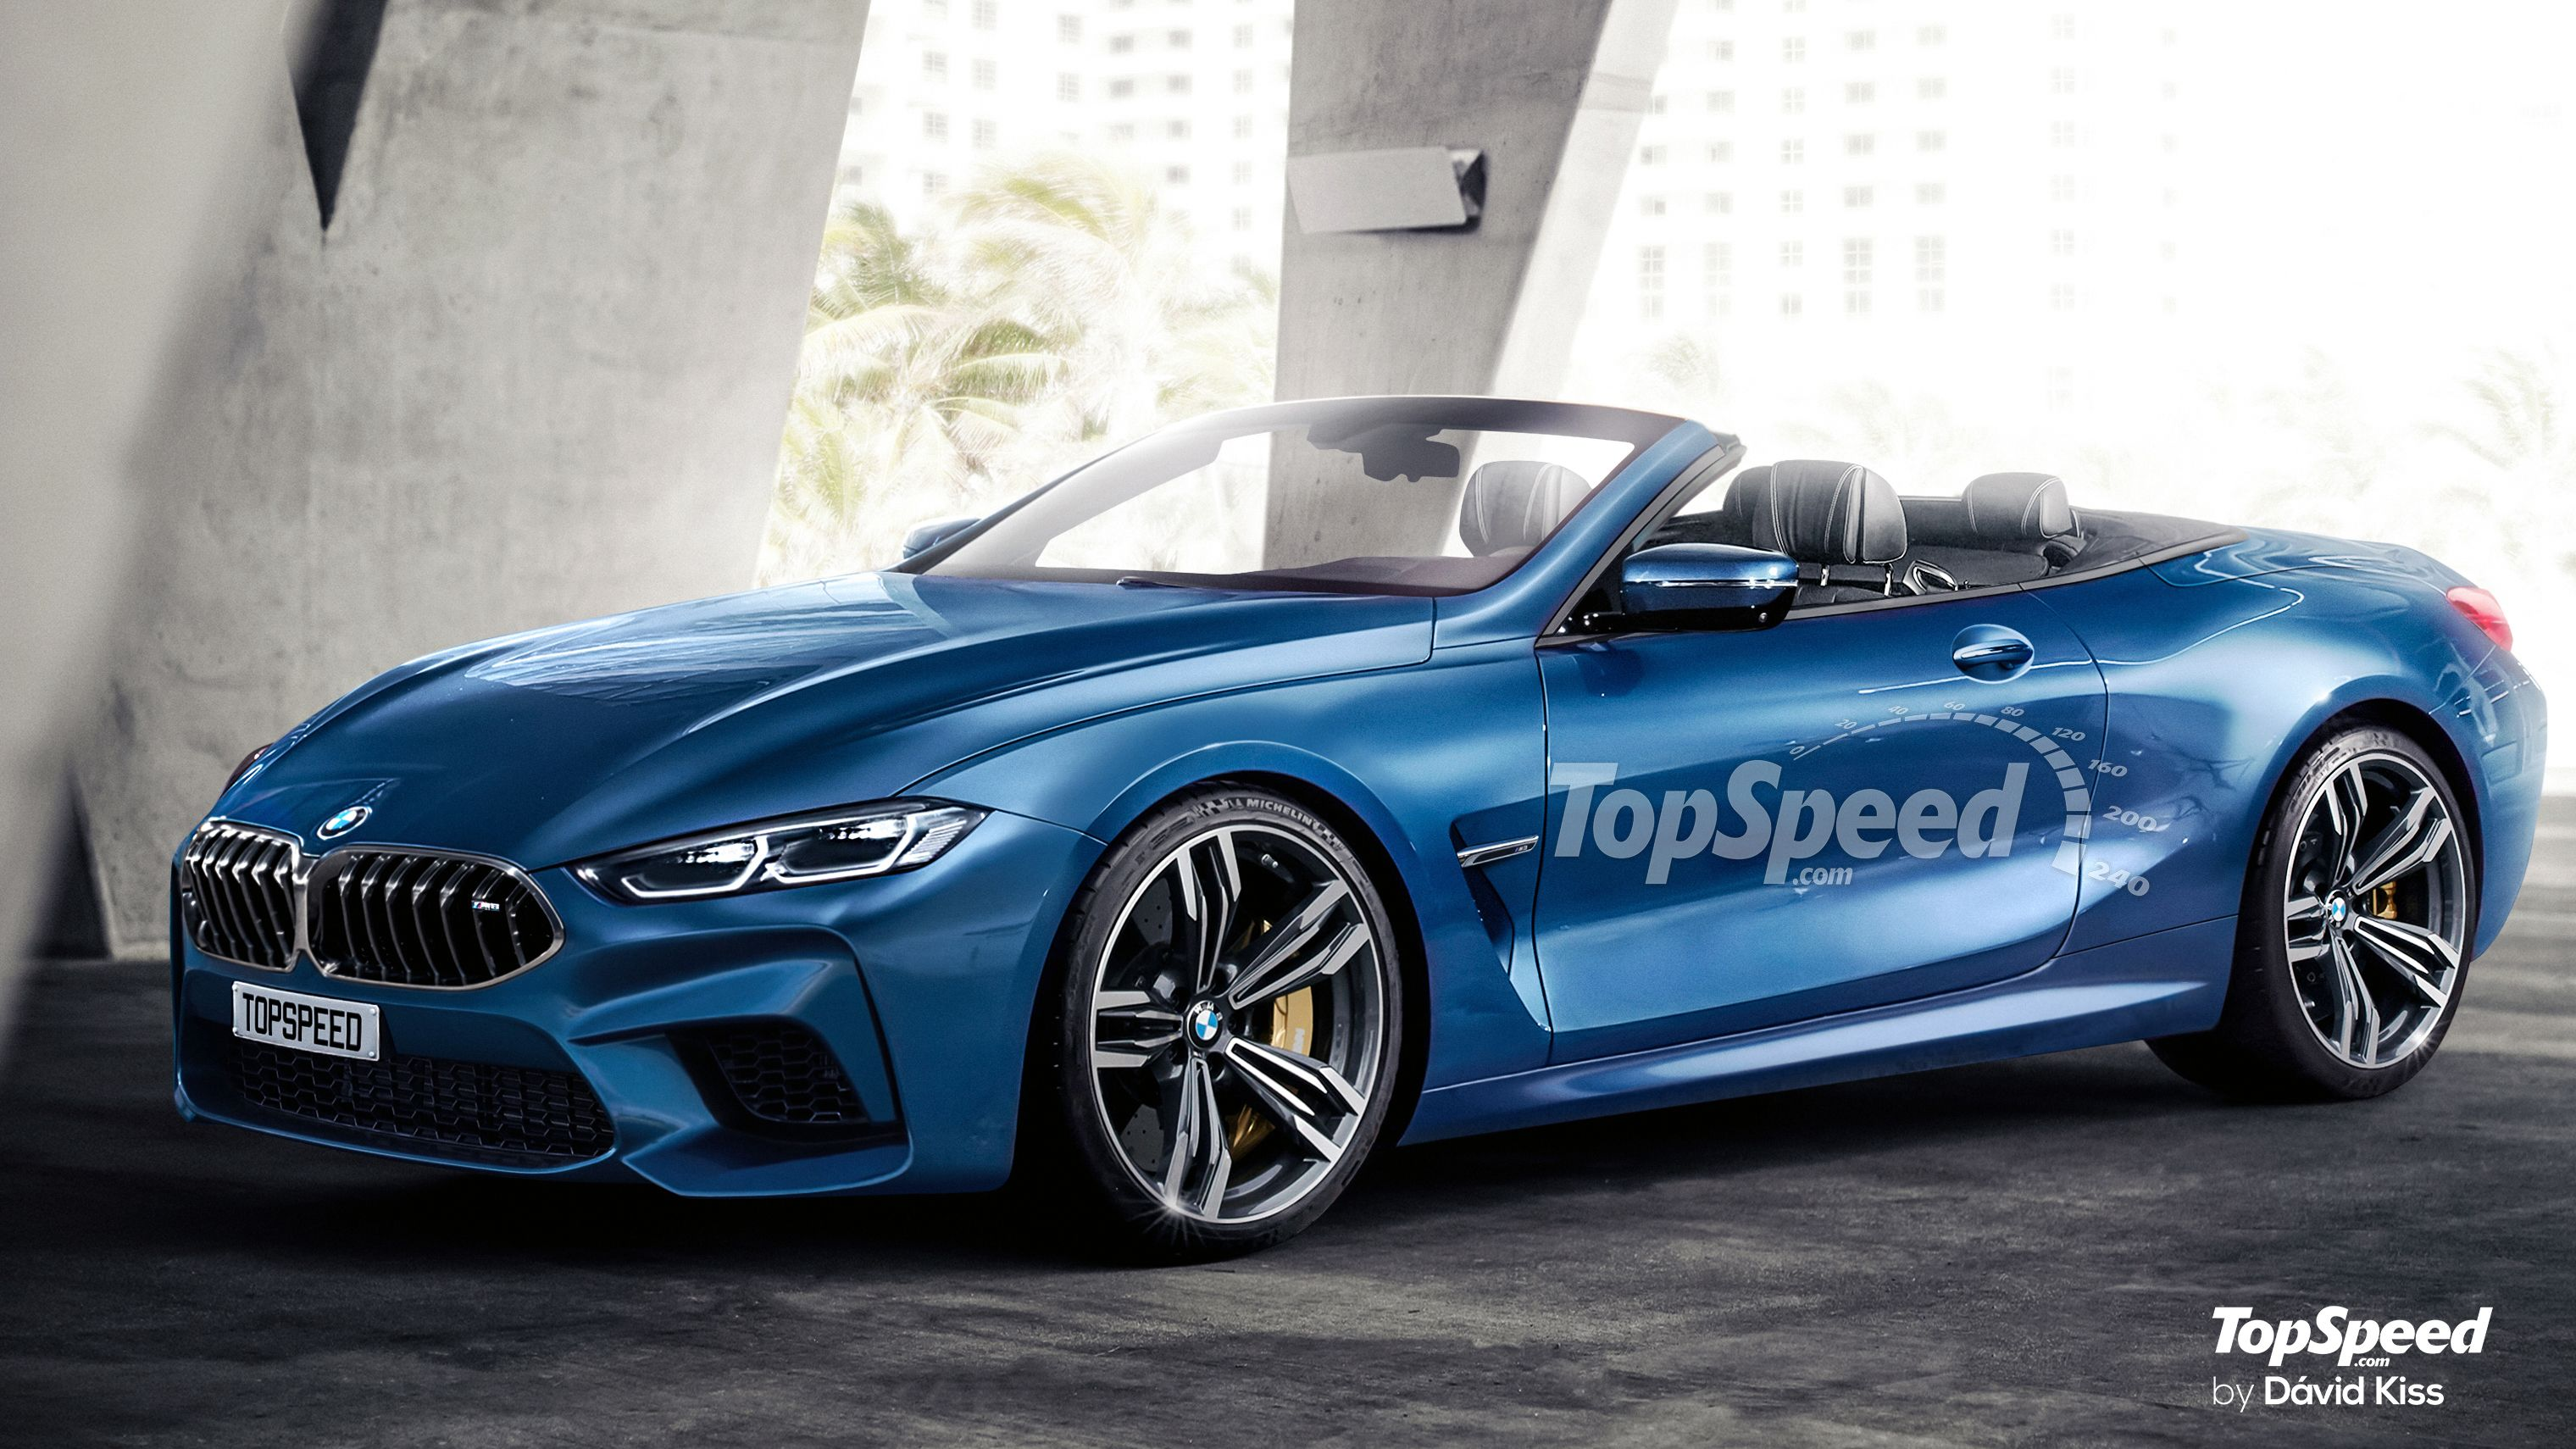 2019 Bmw 8 Series Top Speed Bmw Car Bmw Models